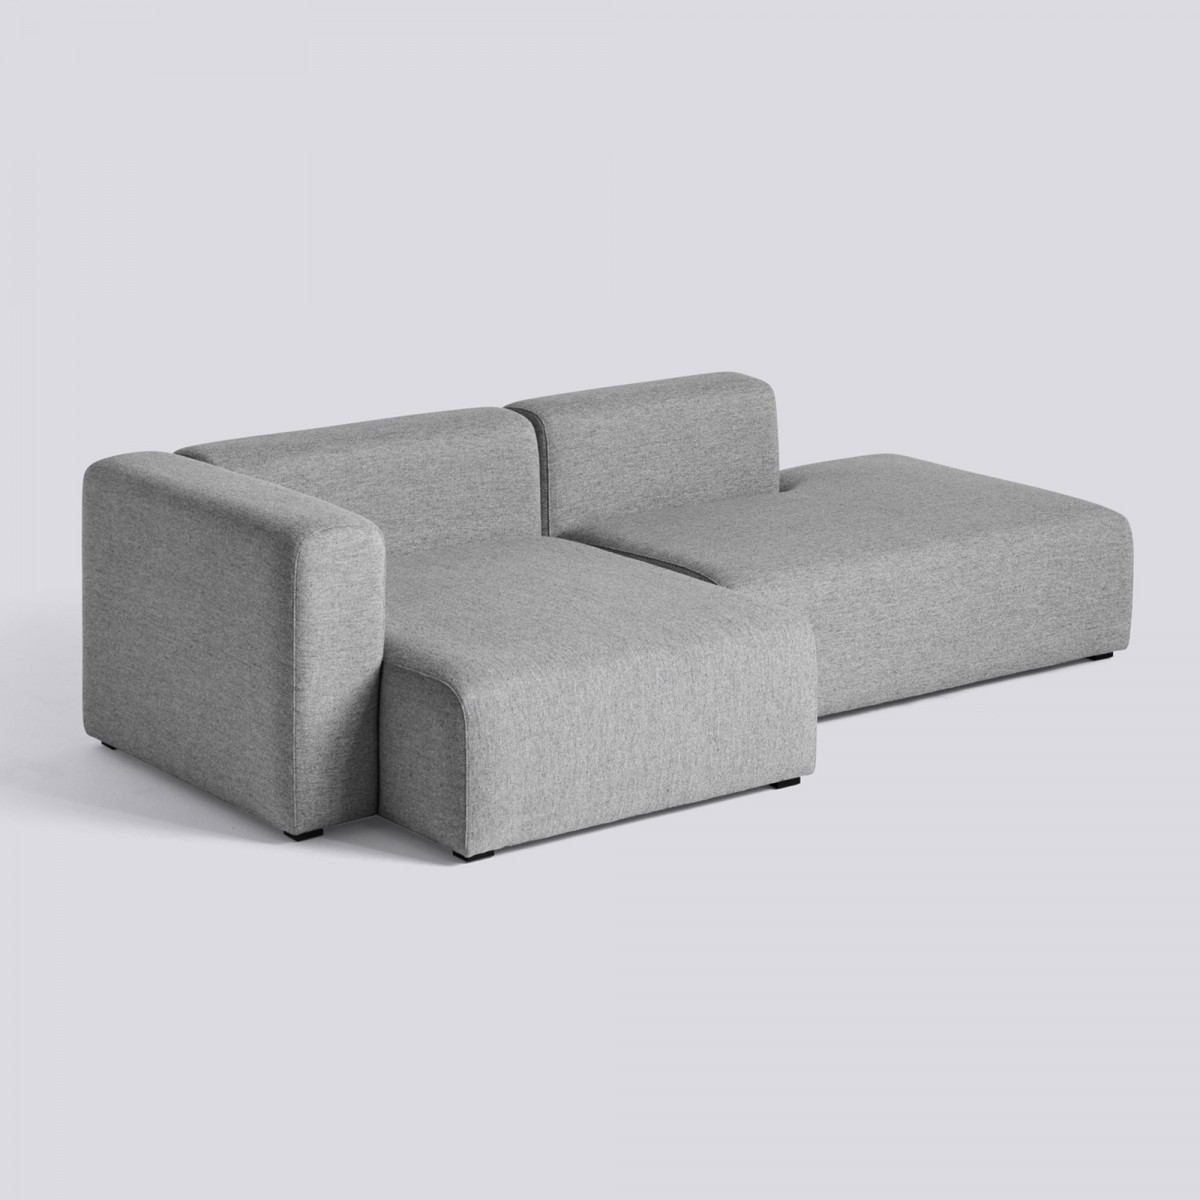 Sofa Mags Modular Mags 2 1 2 Seaters Sofa With Kvadrat Fabric Hay